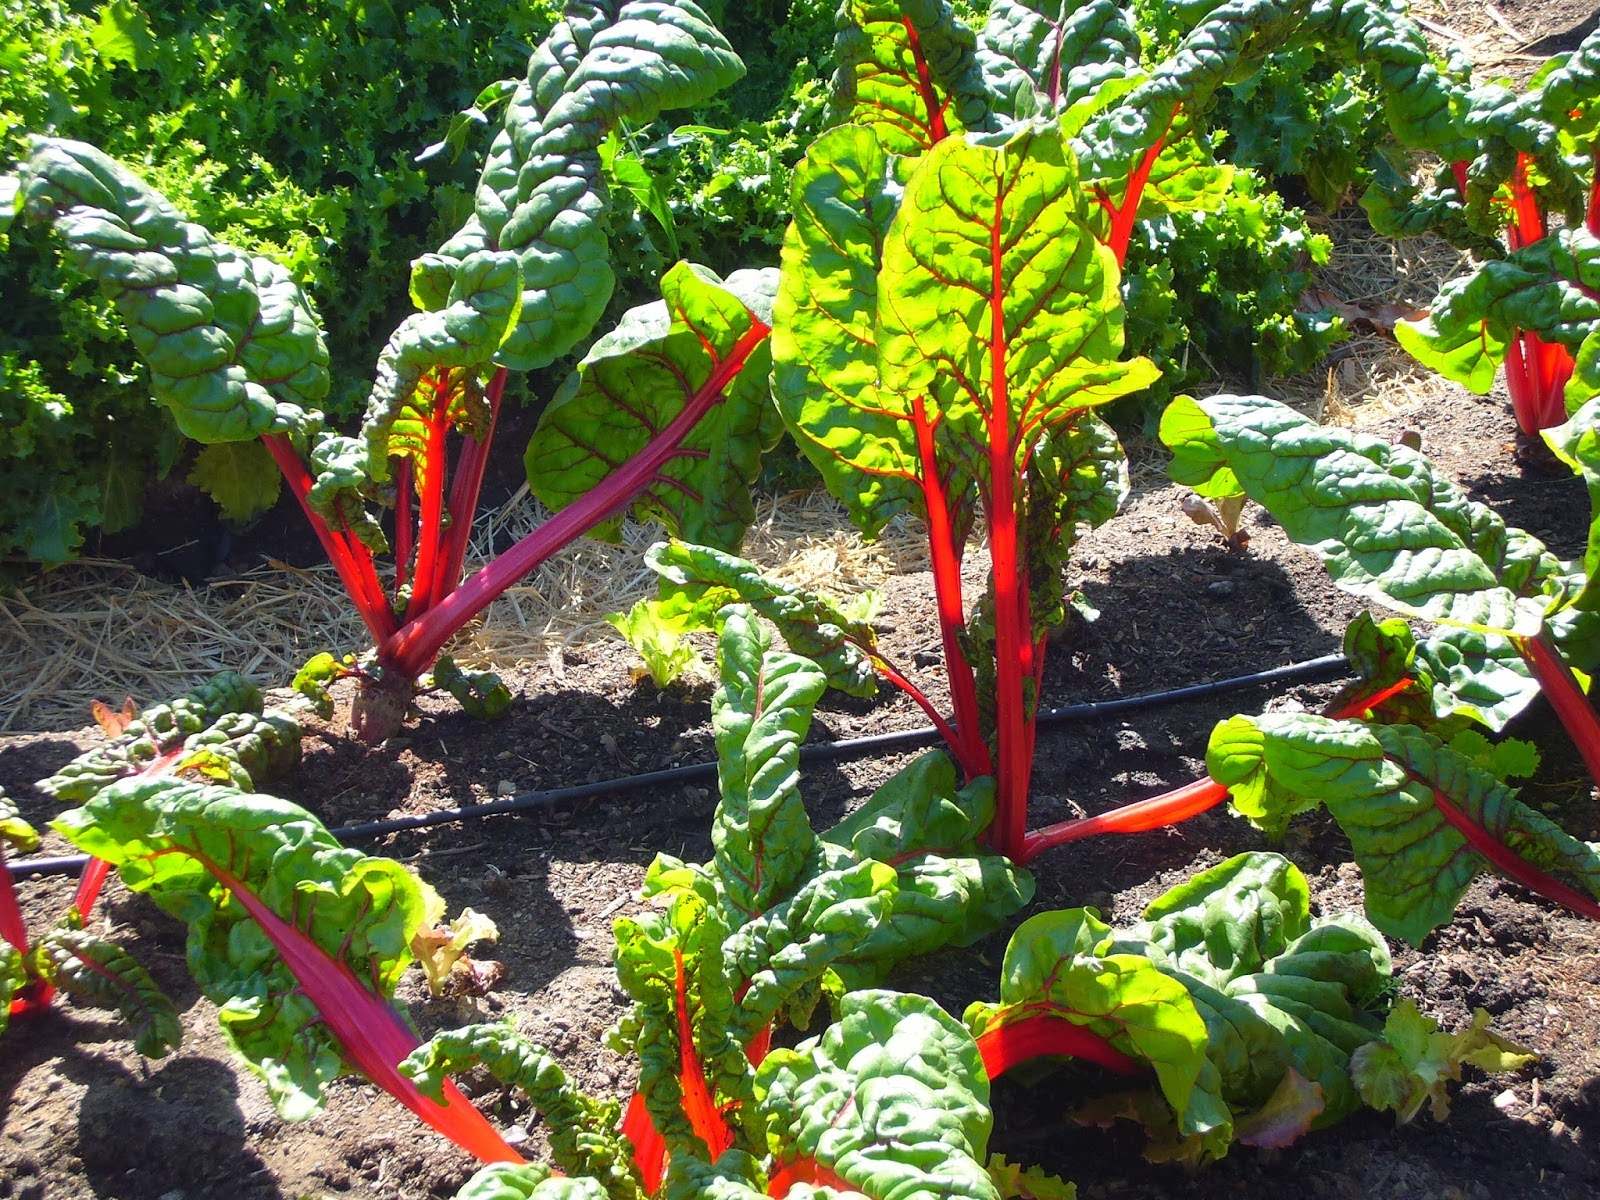 Field grown Swiss chard